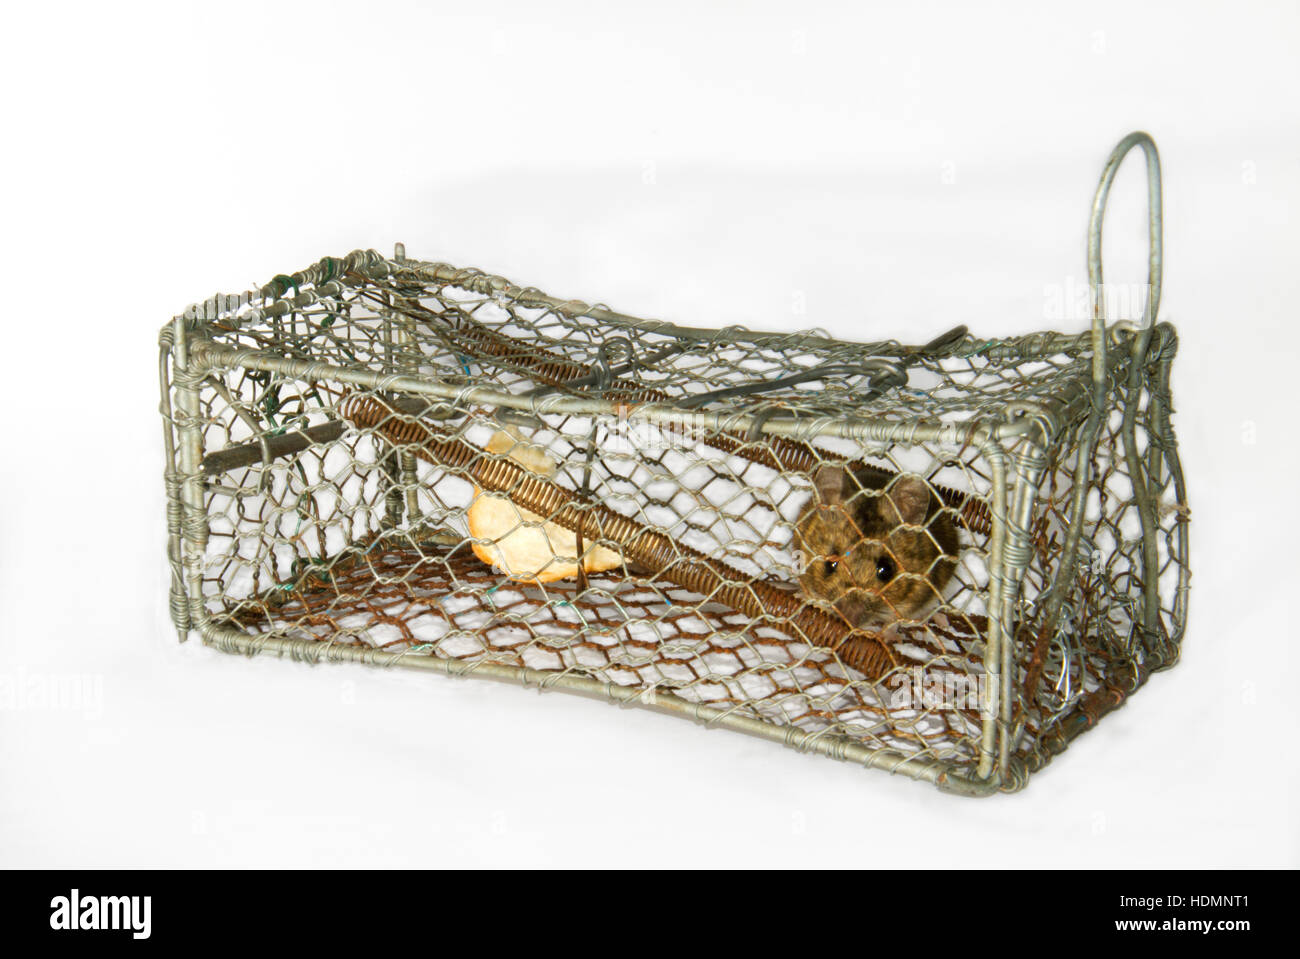 House mouse caught in a humane mouse trap - Stock Image